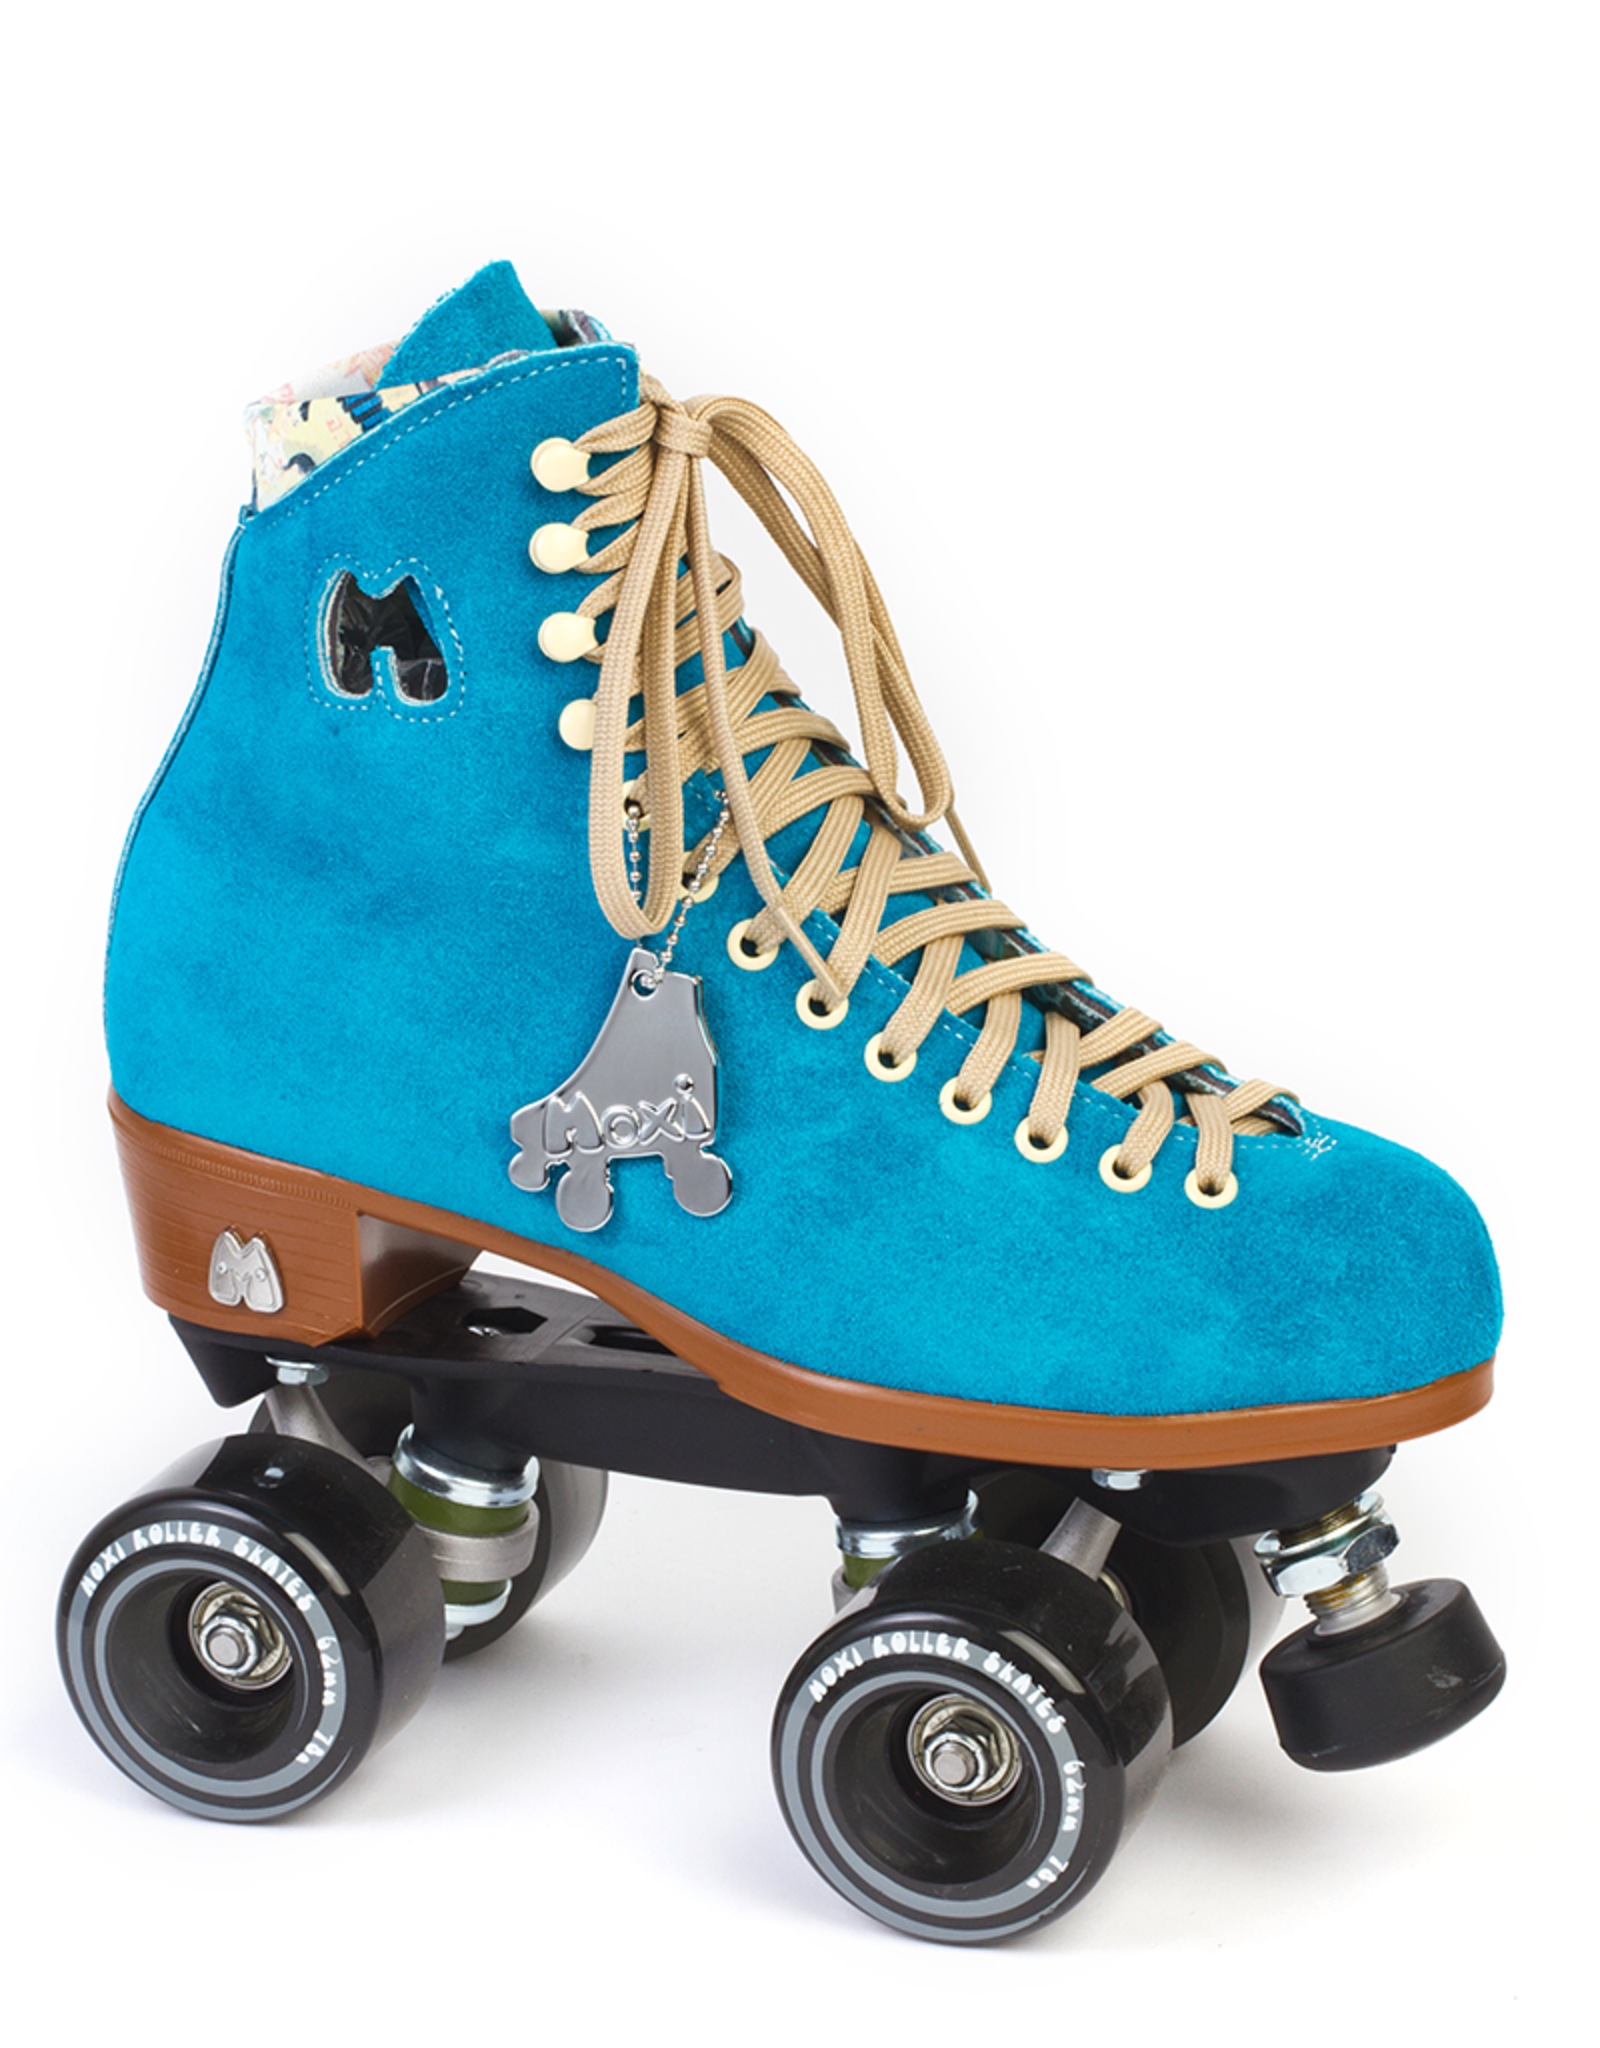 Moxi Moxi Lolly Skate Package